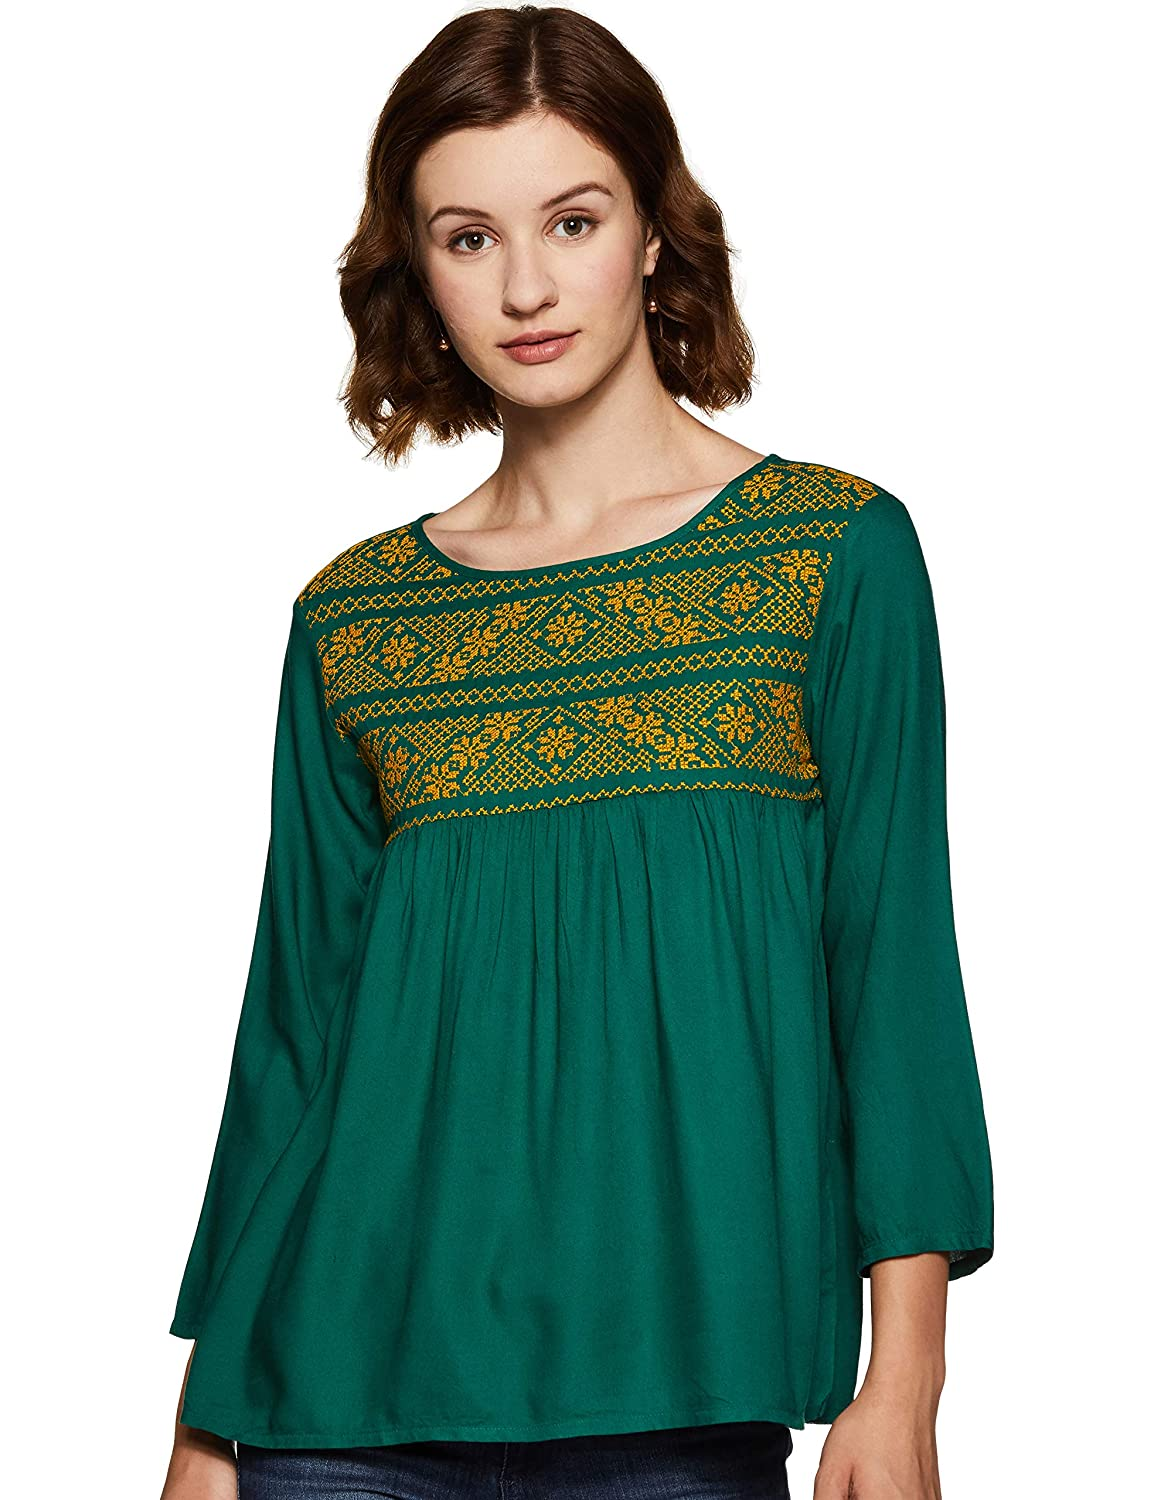 THE VANCA Women's Peach Rayon Top with Embroidery